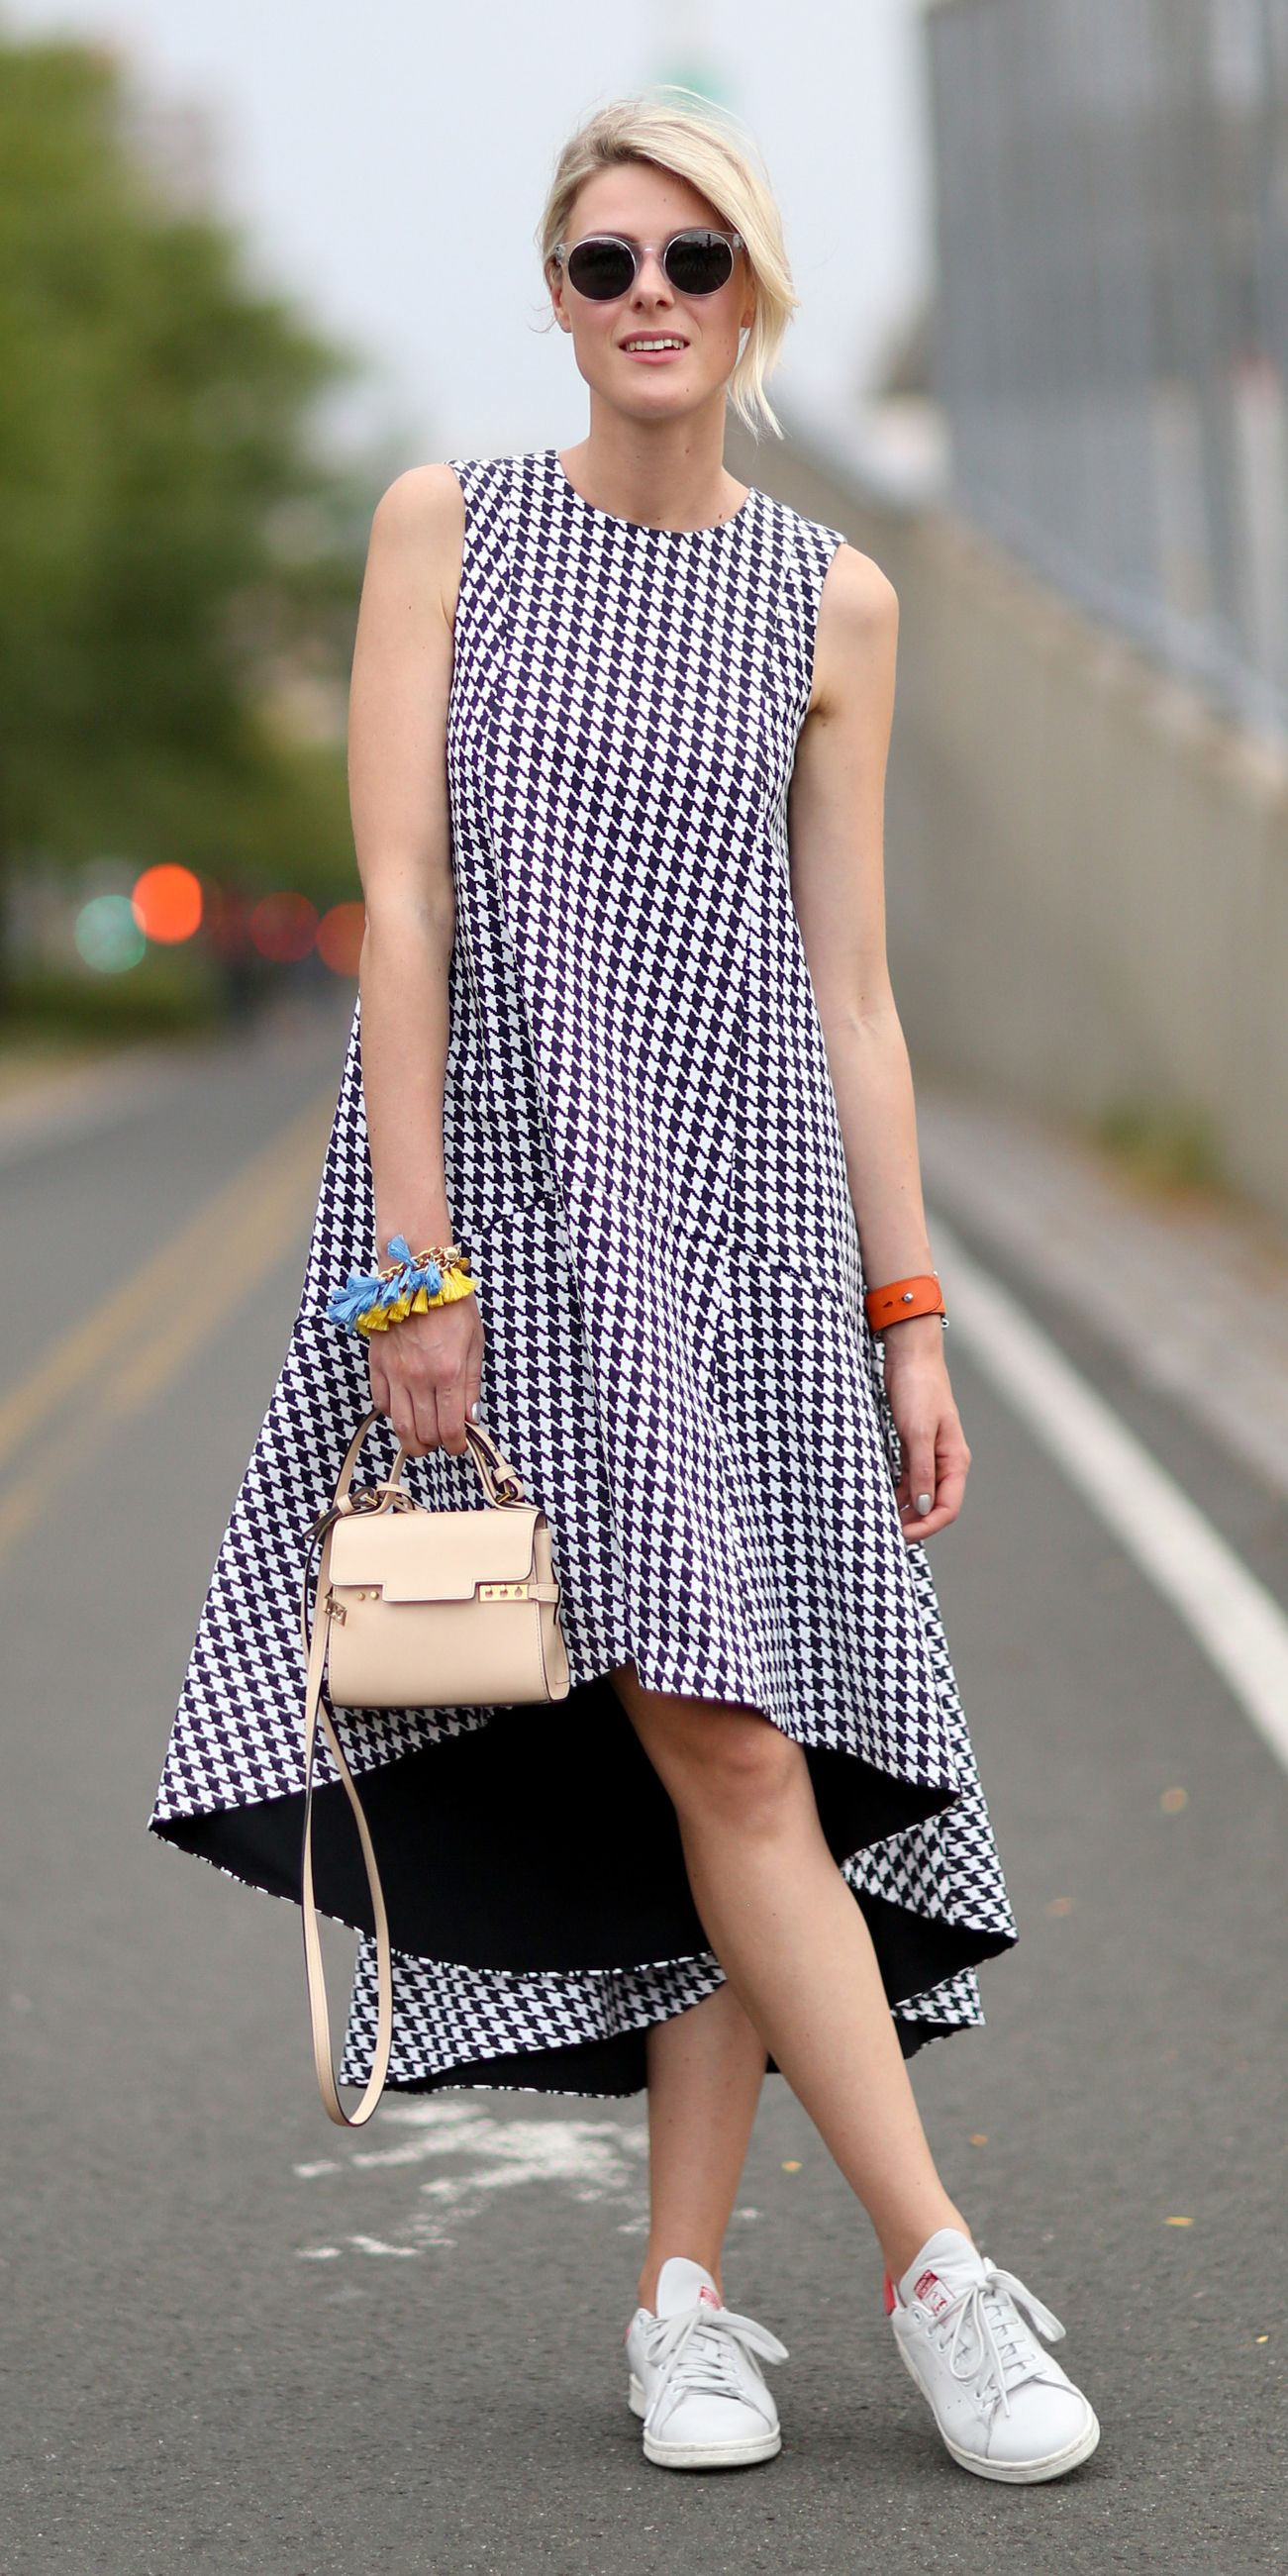 Kjoleprojekt 2015 Street Style Outfits Nywf b amp;w Spring gingham q0Cx5Tw